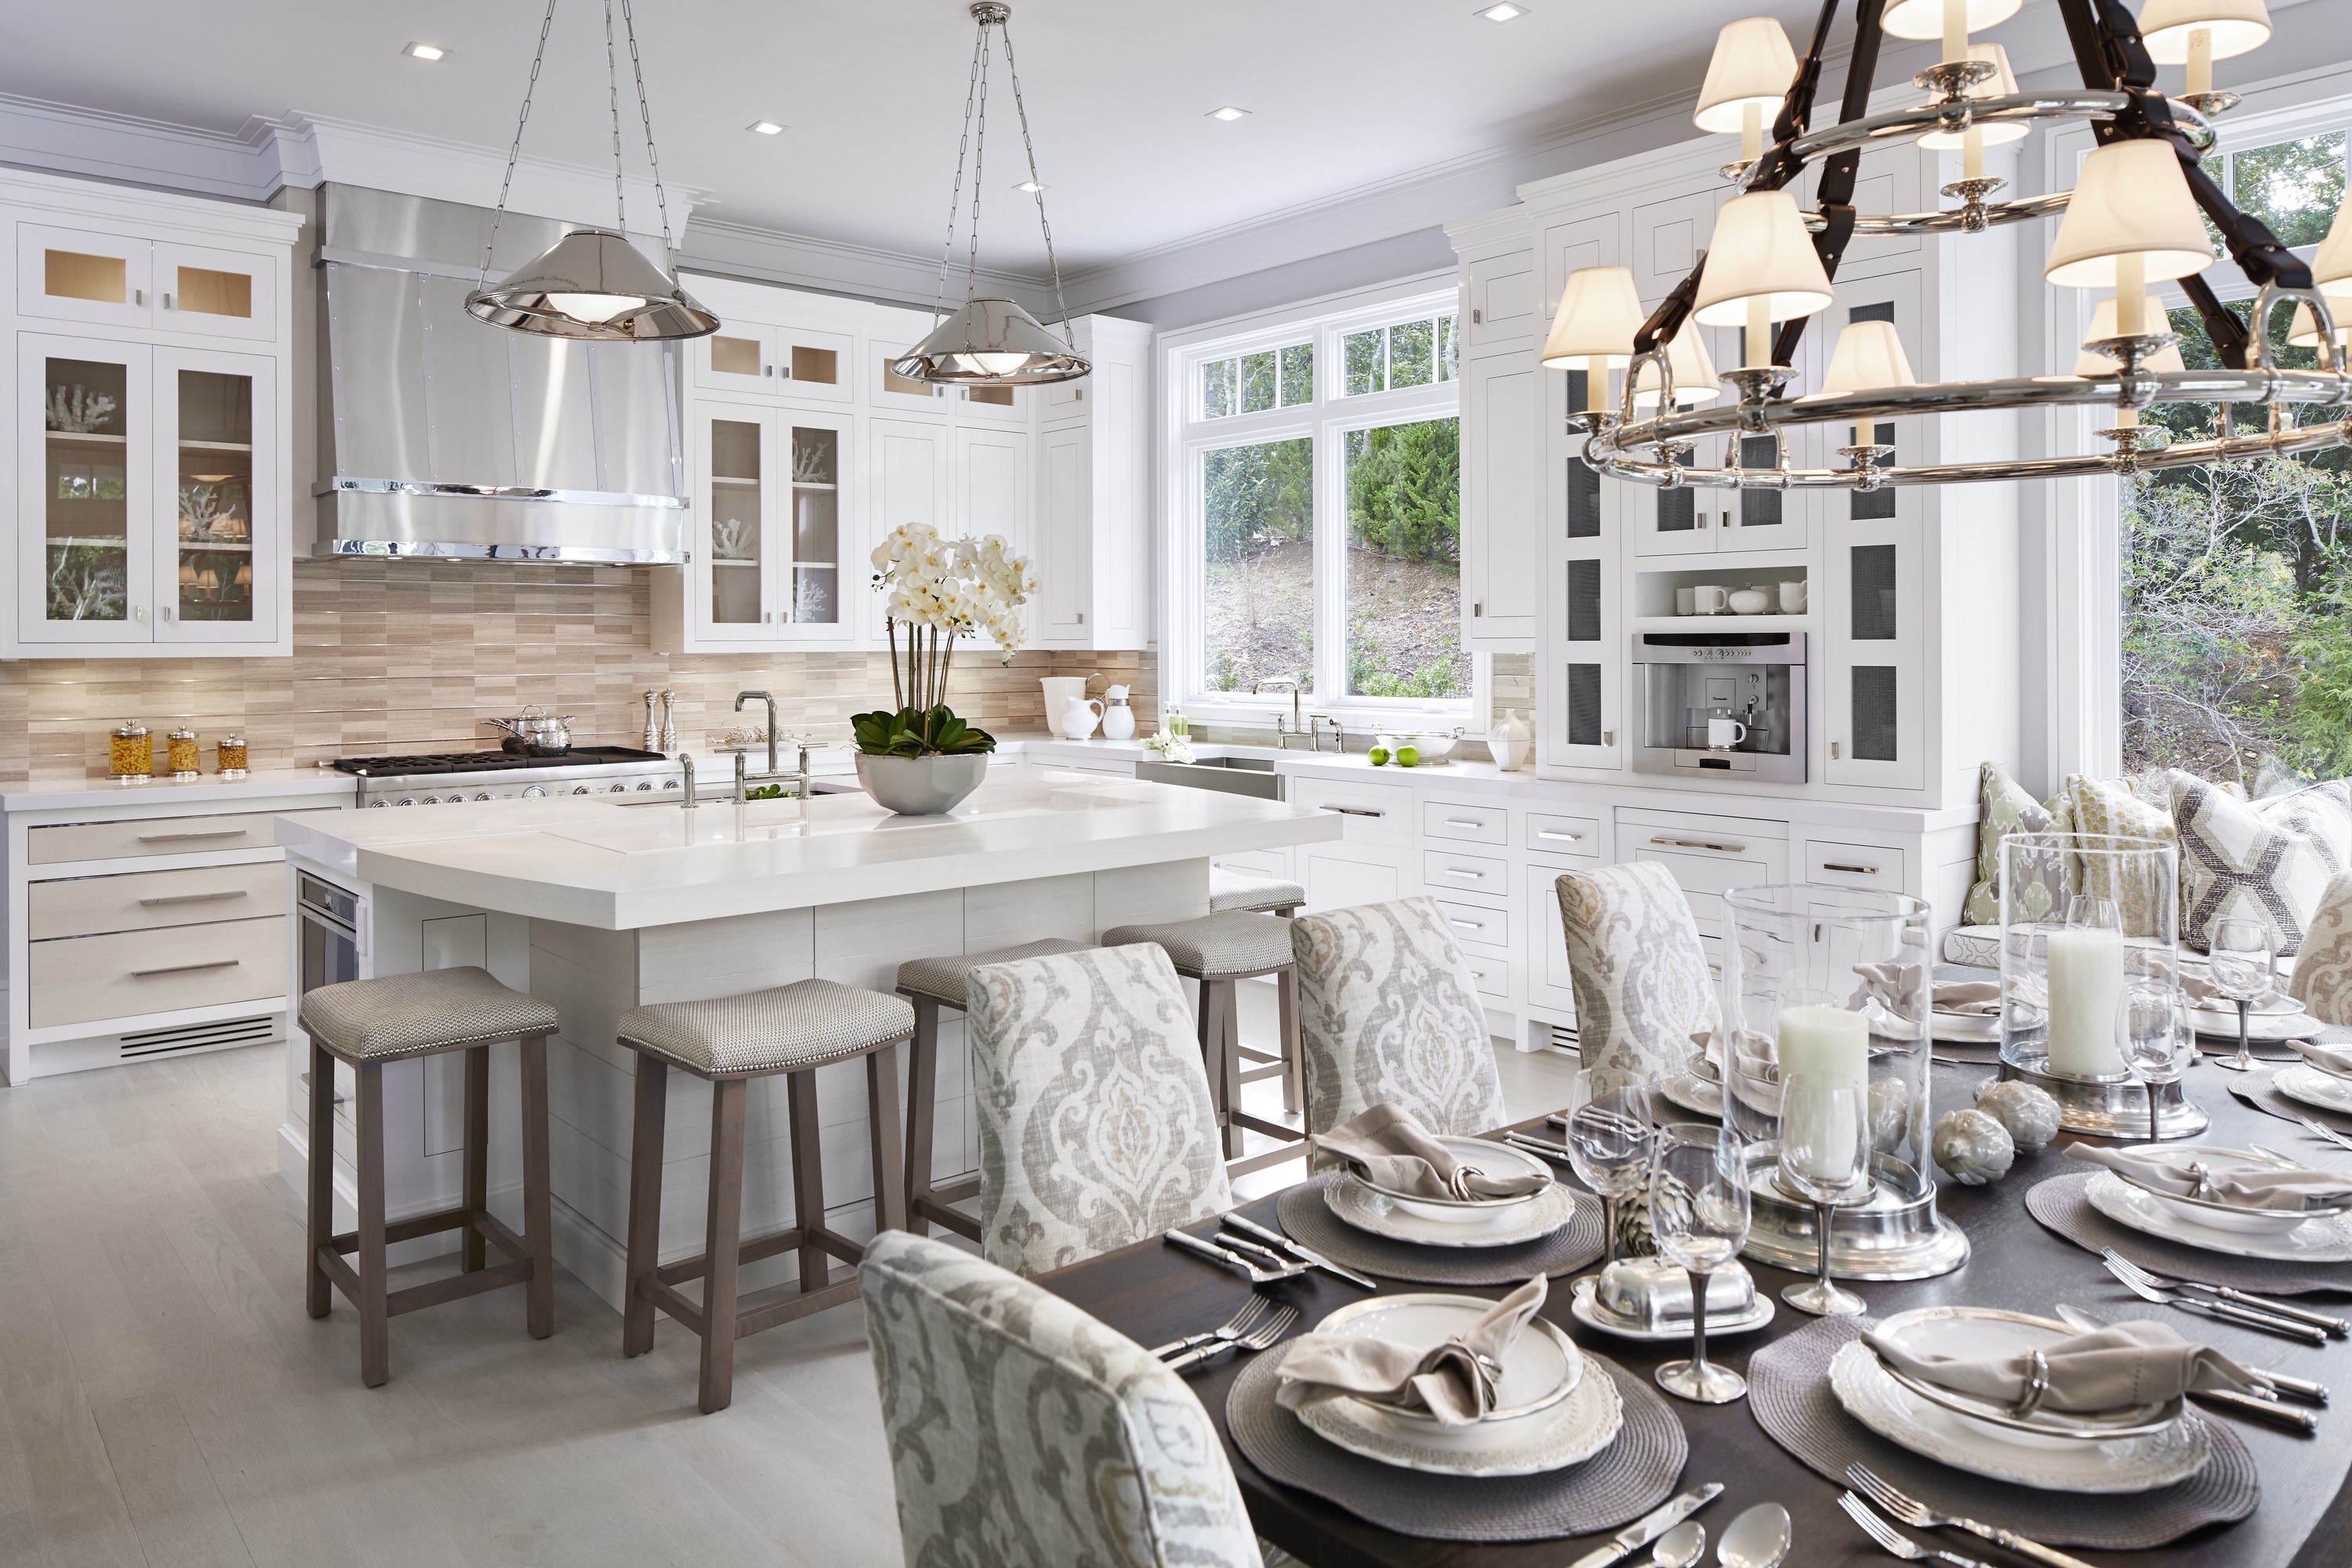 Purist Bridge Kitchen Faucet     Prolific Kitchen Sink     Vault Apron-Front Sink     The vision of custom cabinet designers Bakes & Kropp, this kitchen's thoughtful layout includes ample built-ins to house everything from delicate stemware to an espresso bar.